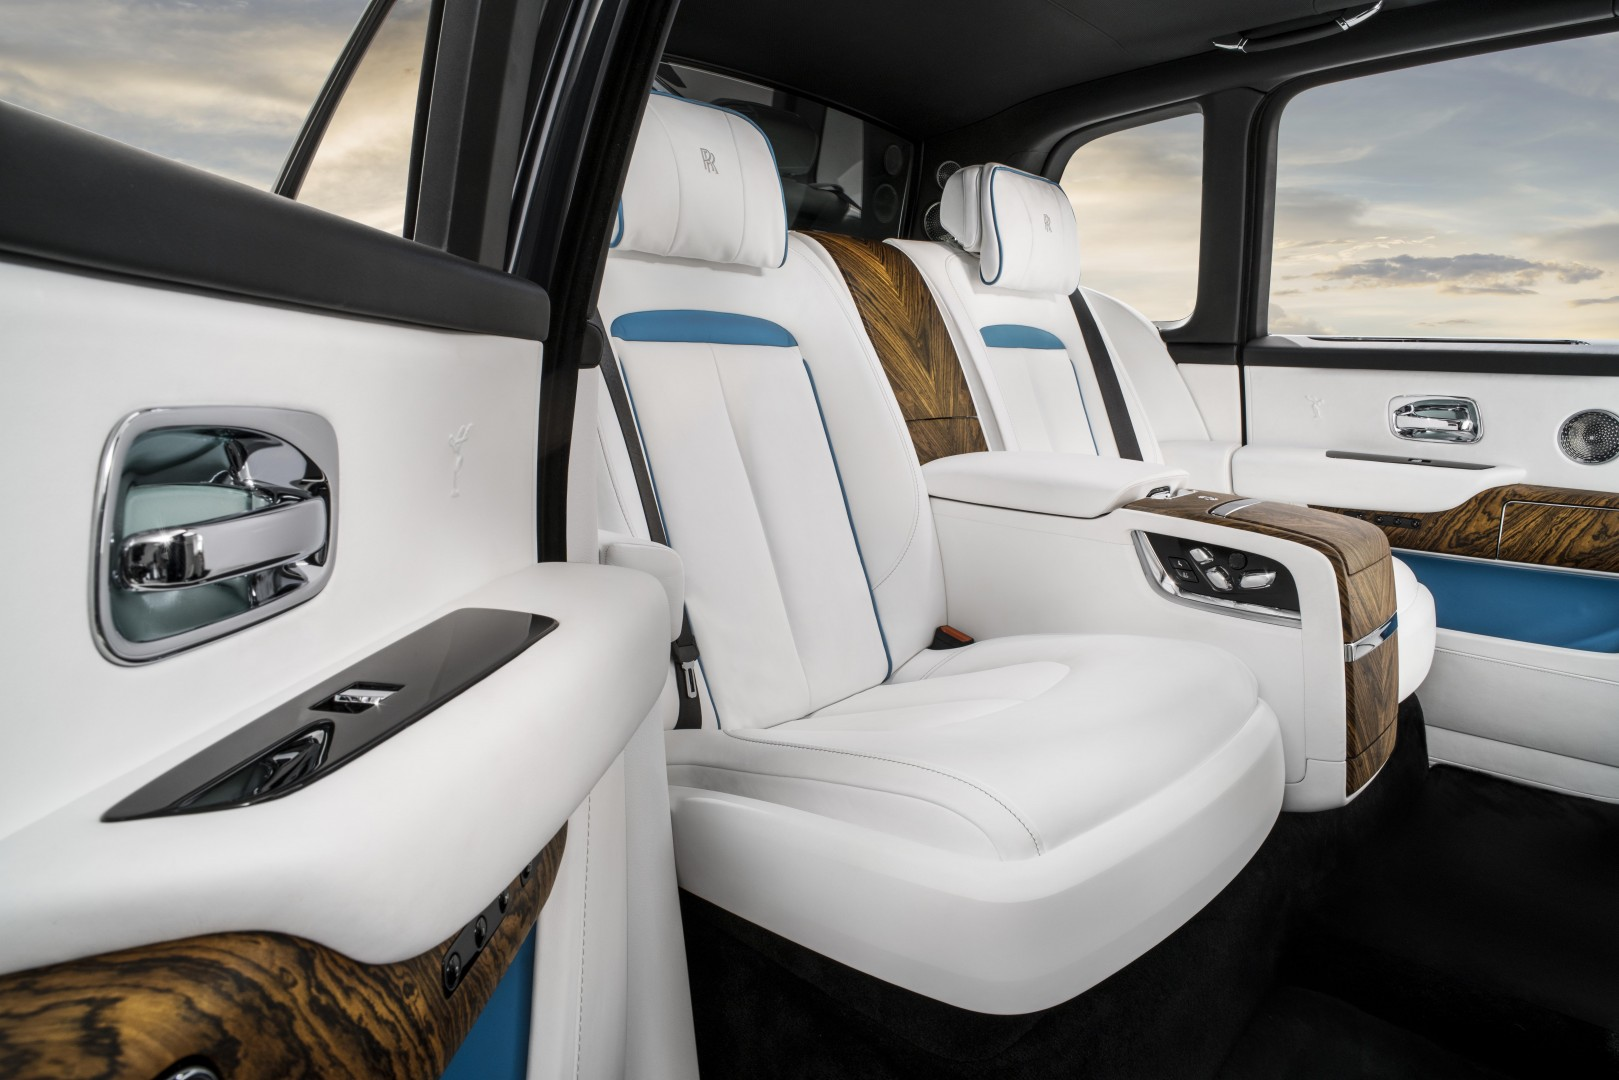 The Ultimate Off Roader Rolls Royce Interior Rear White